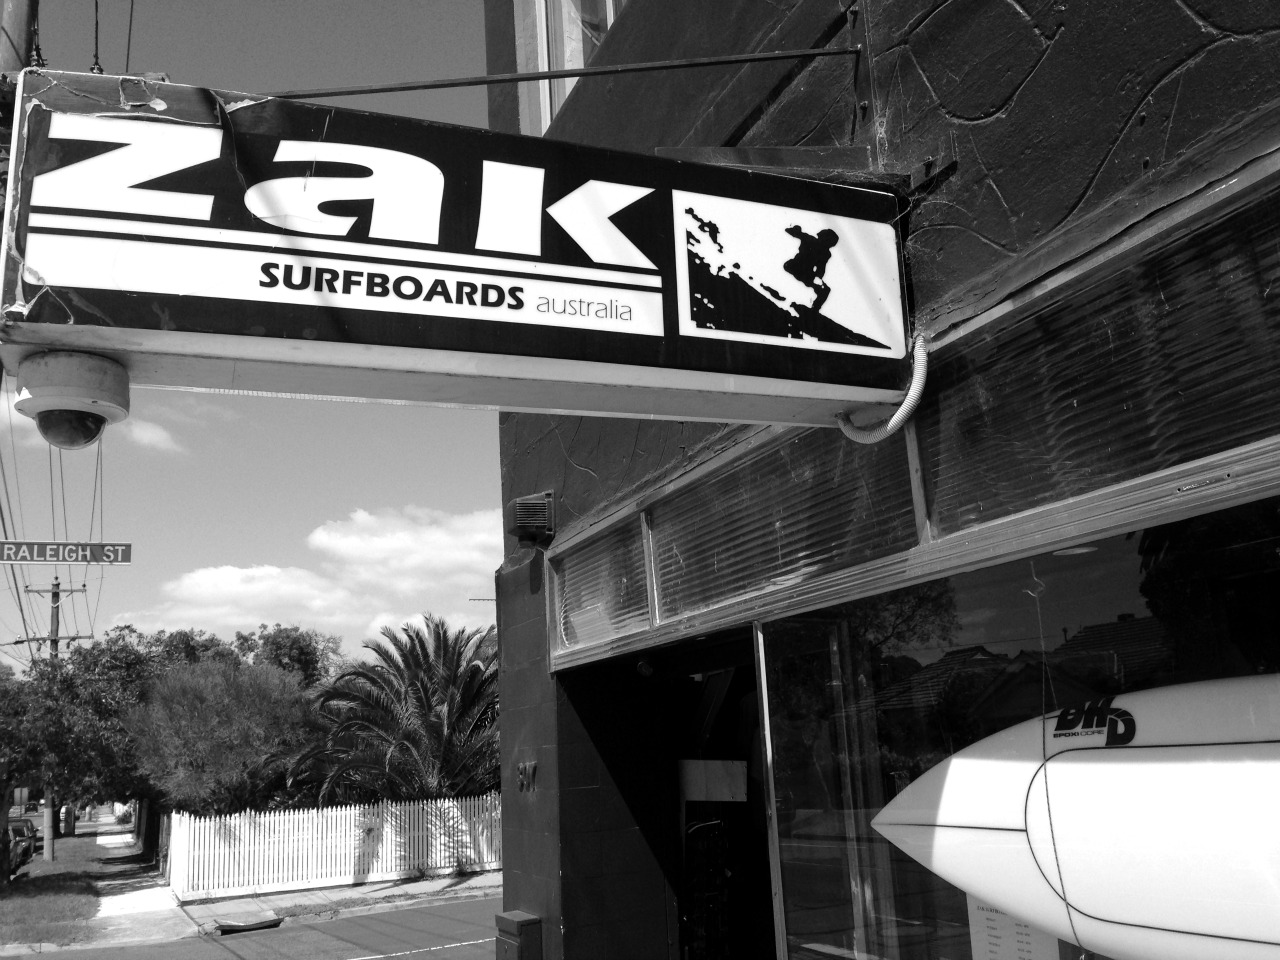 Quick Surfboard Repairs Melbourne Zak Surfboards